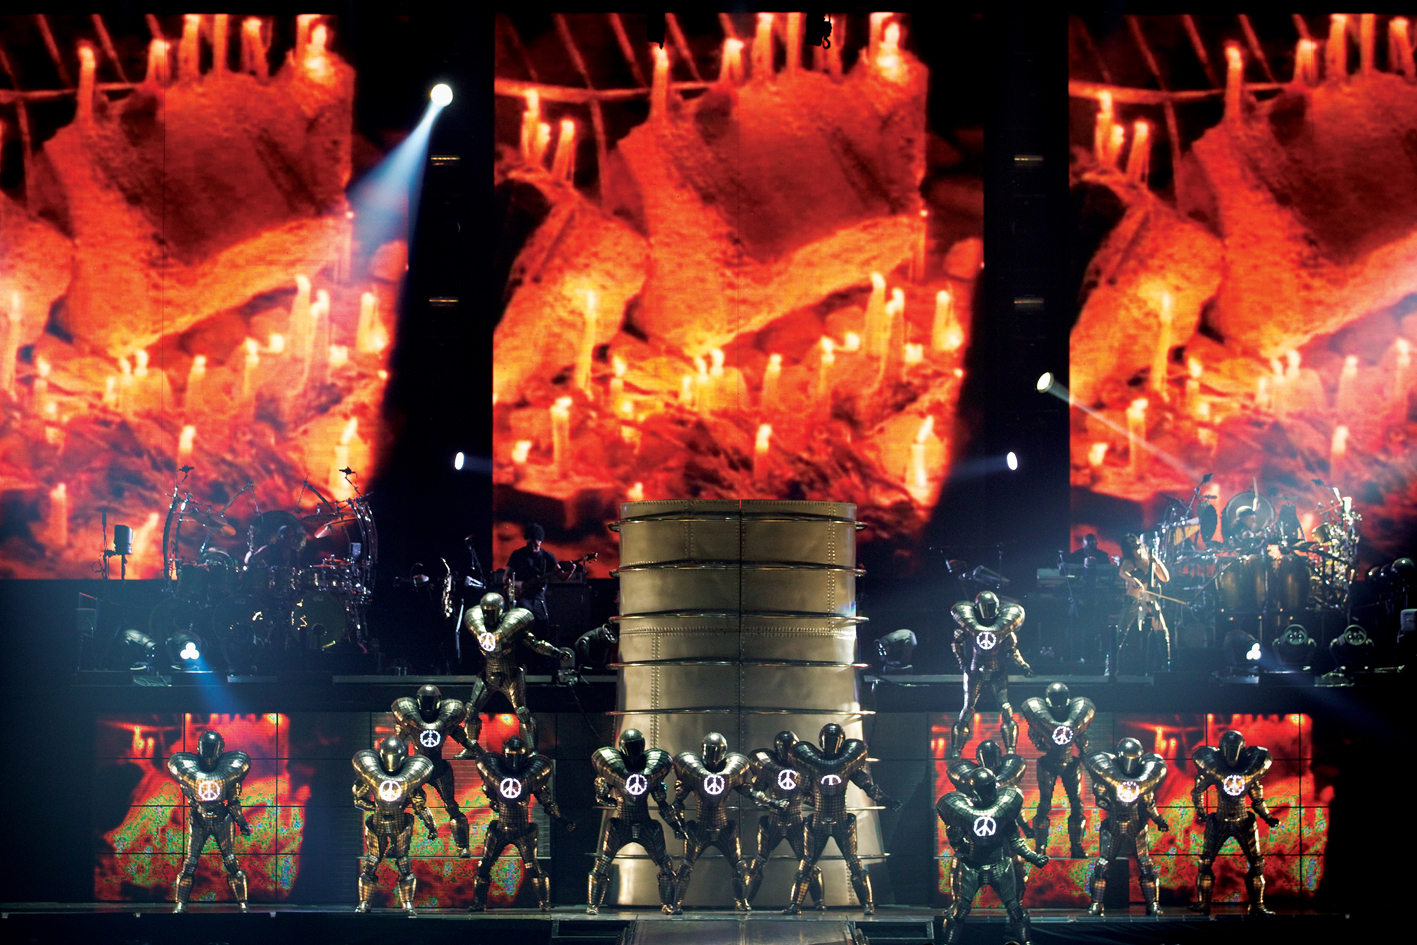 REVIEW – MICHAEL JACKSON THE IMMORTAL WORLD TOUR